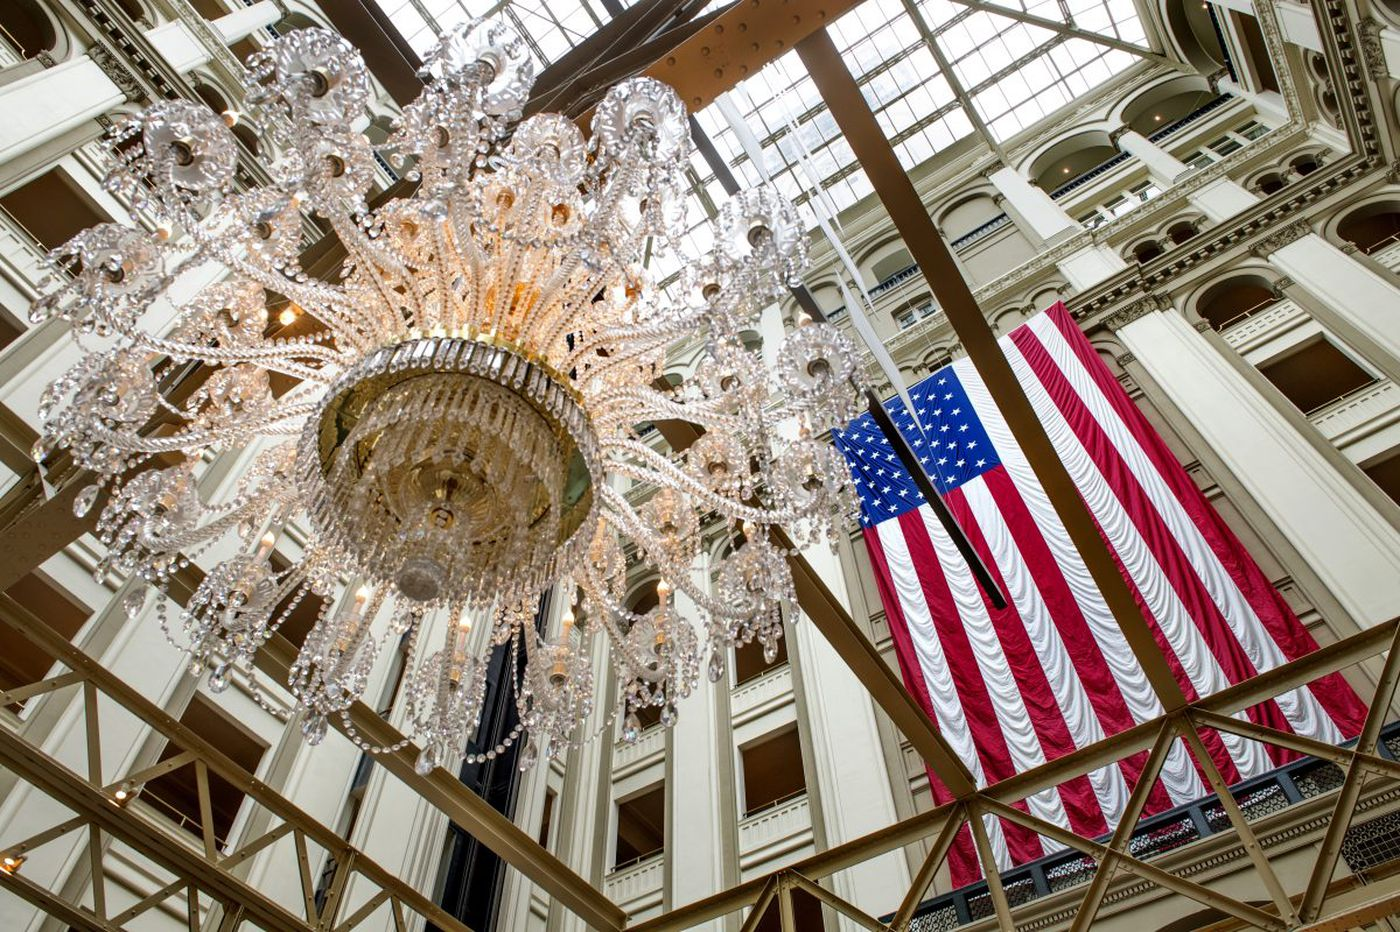 In troubled times, the president's D.C. hotel is a refuge for his fans